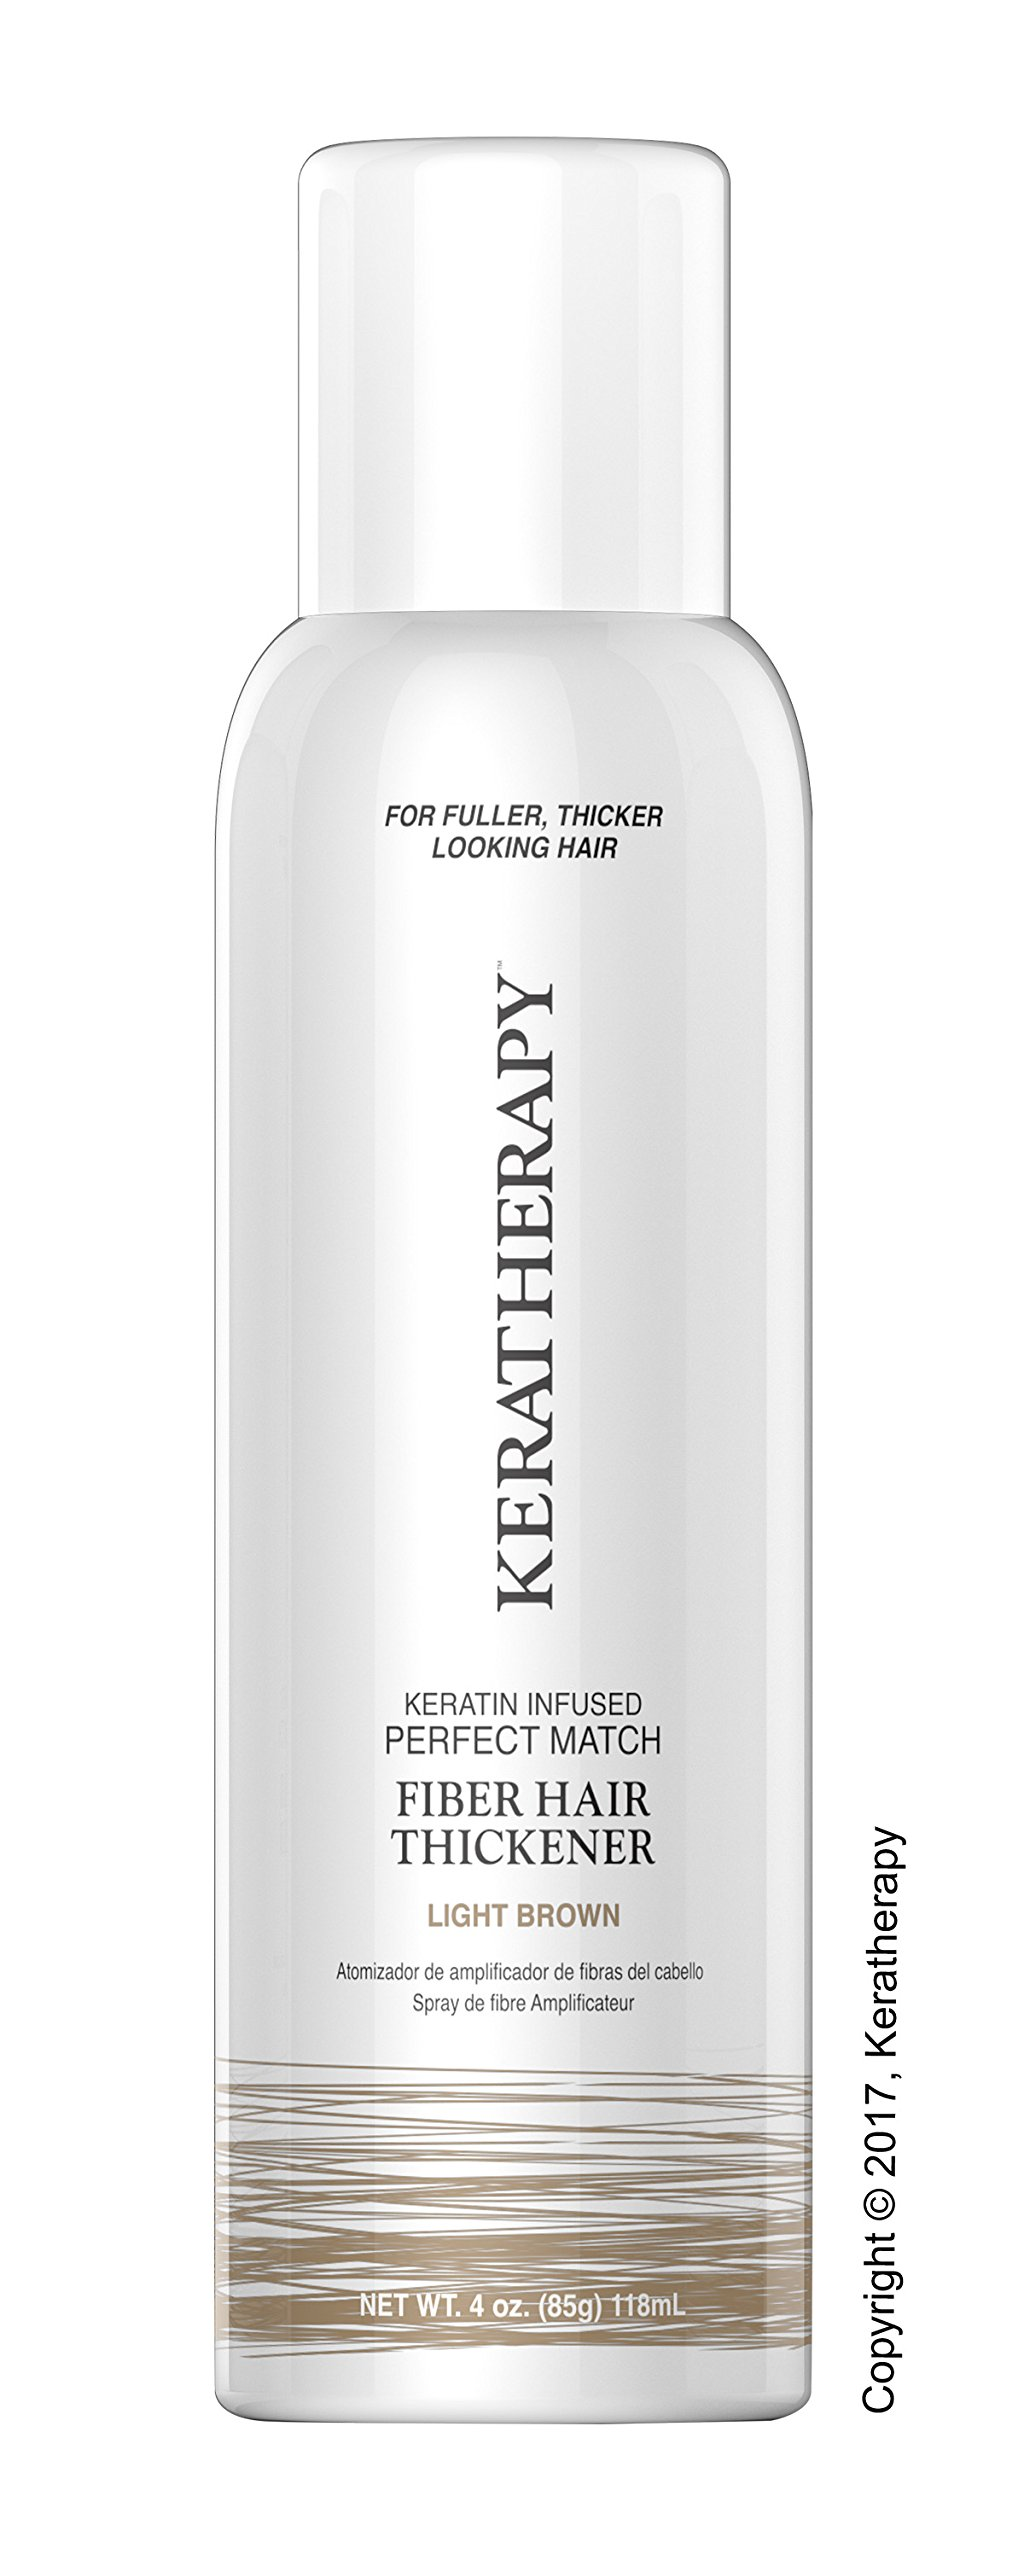 Keratherapy FIBER THICKENING SPRAY 4 OZ Keratin Infused Perfect Match for Fuller, Thicker Looking Hair! (Light Brown)